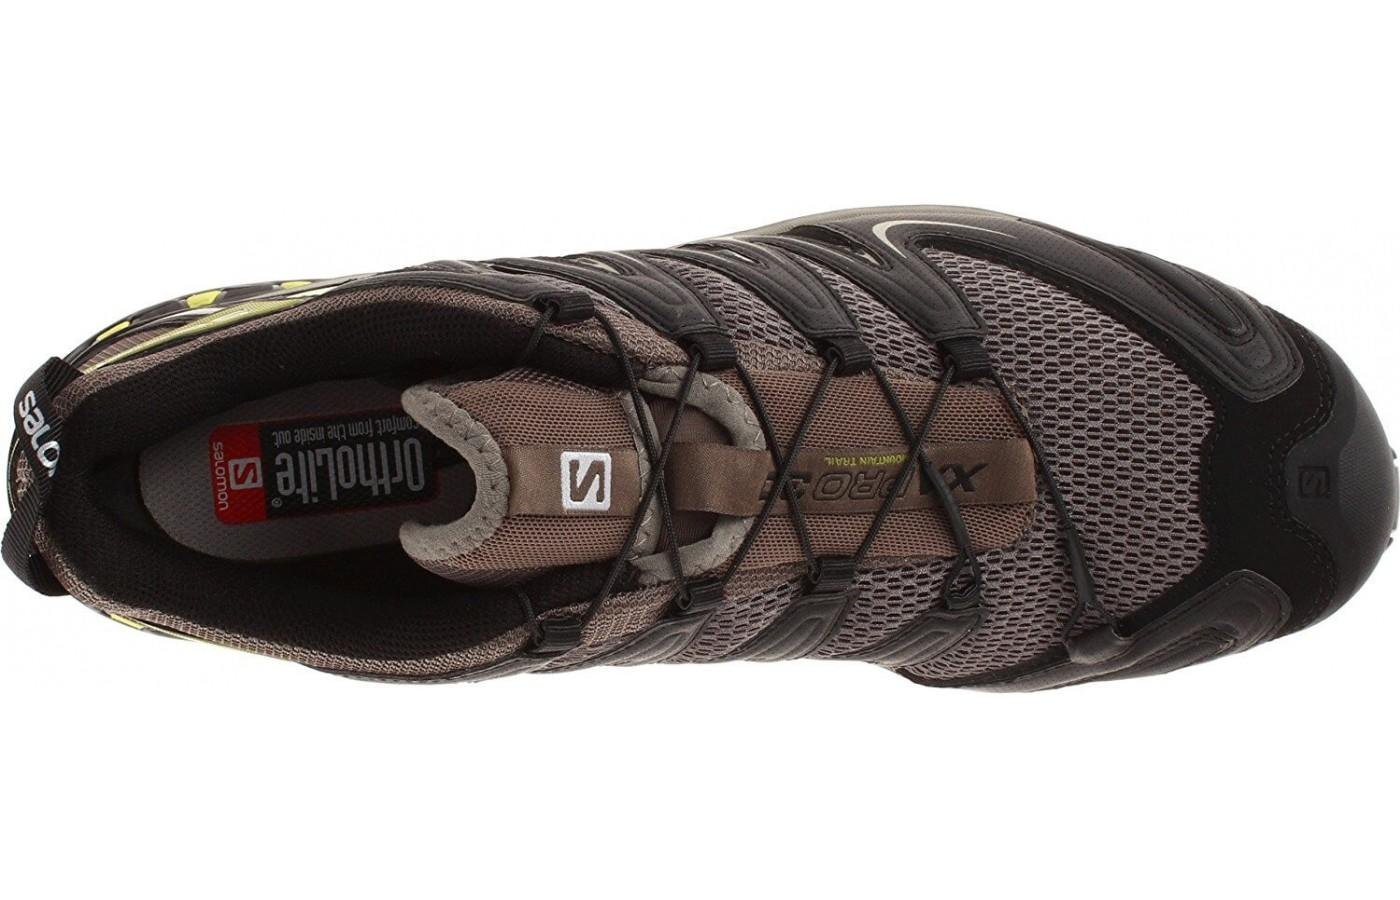 The Salomon Xa Pro 3D M+ provides a precise, secure fit